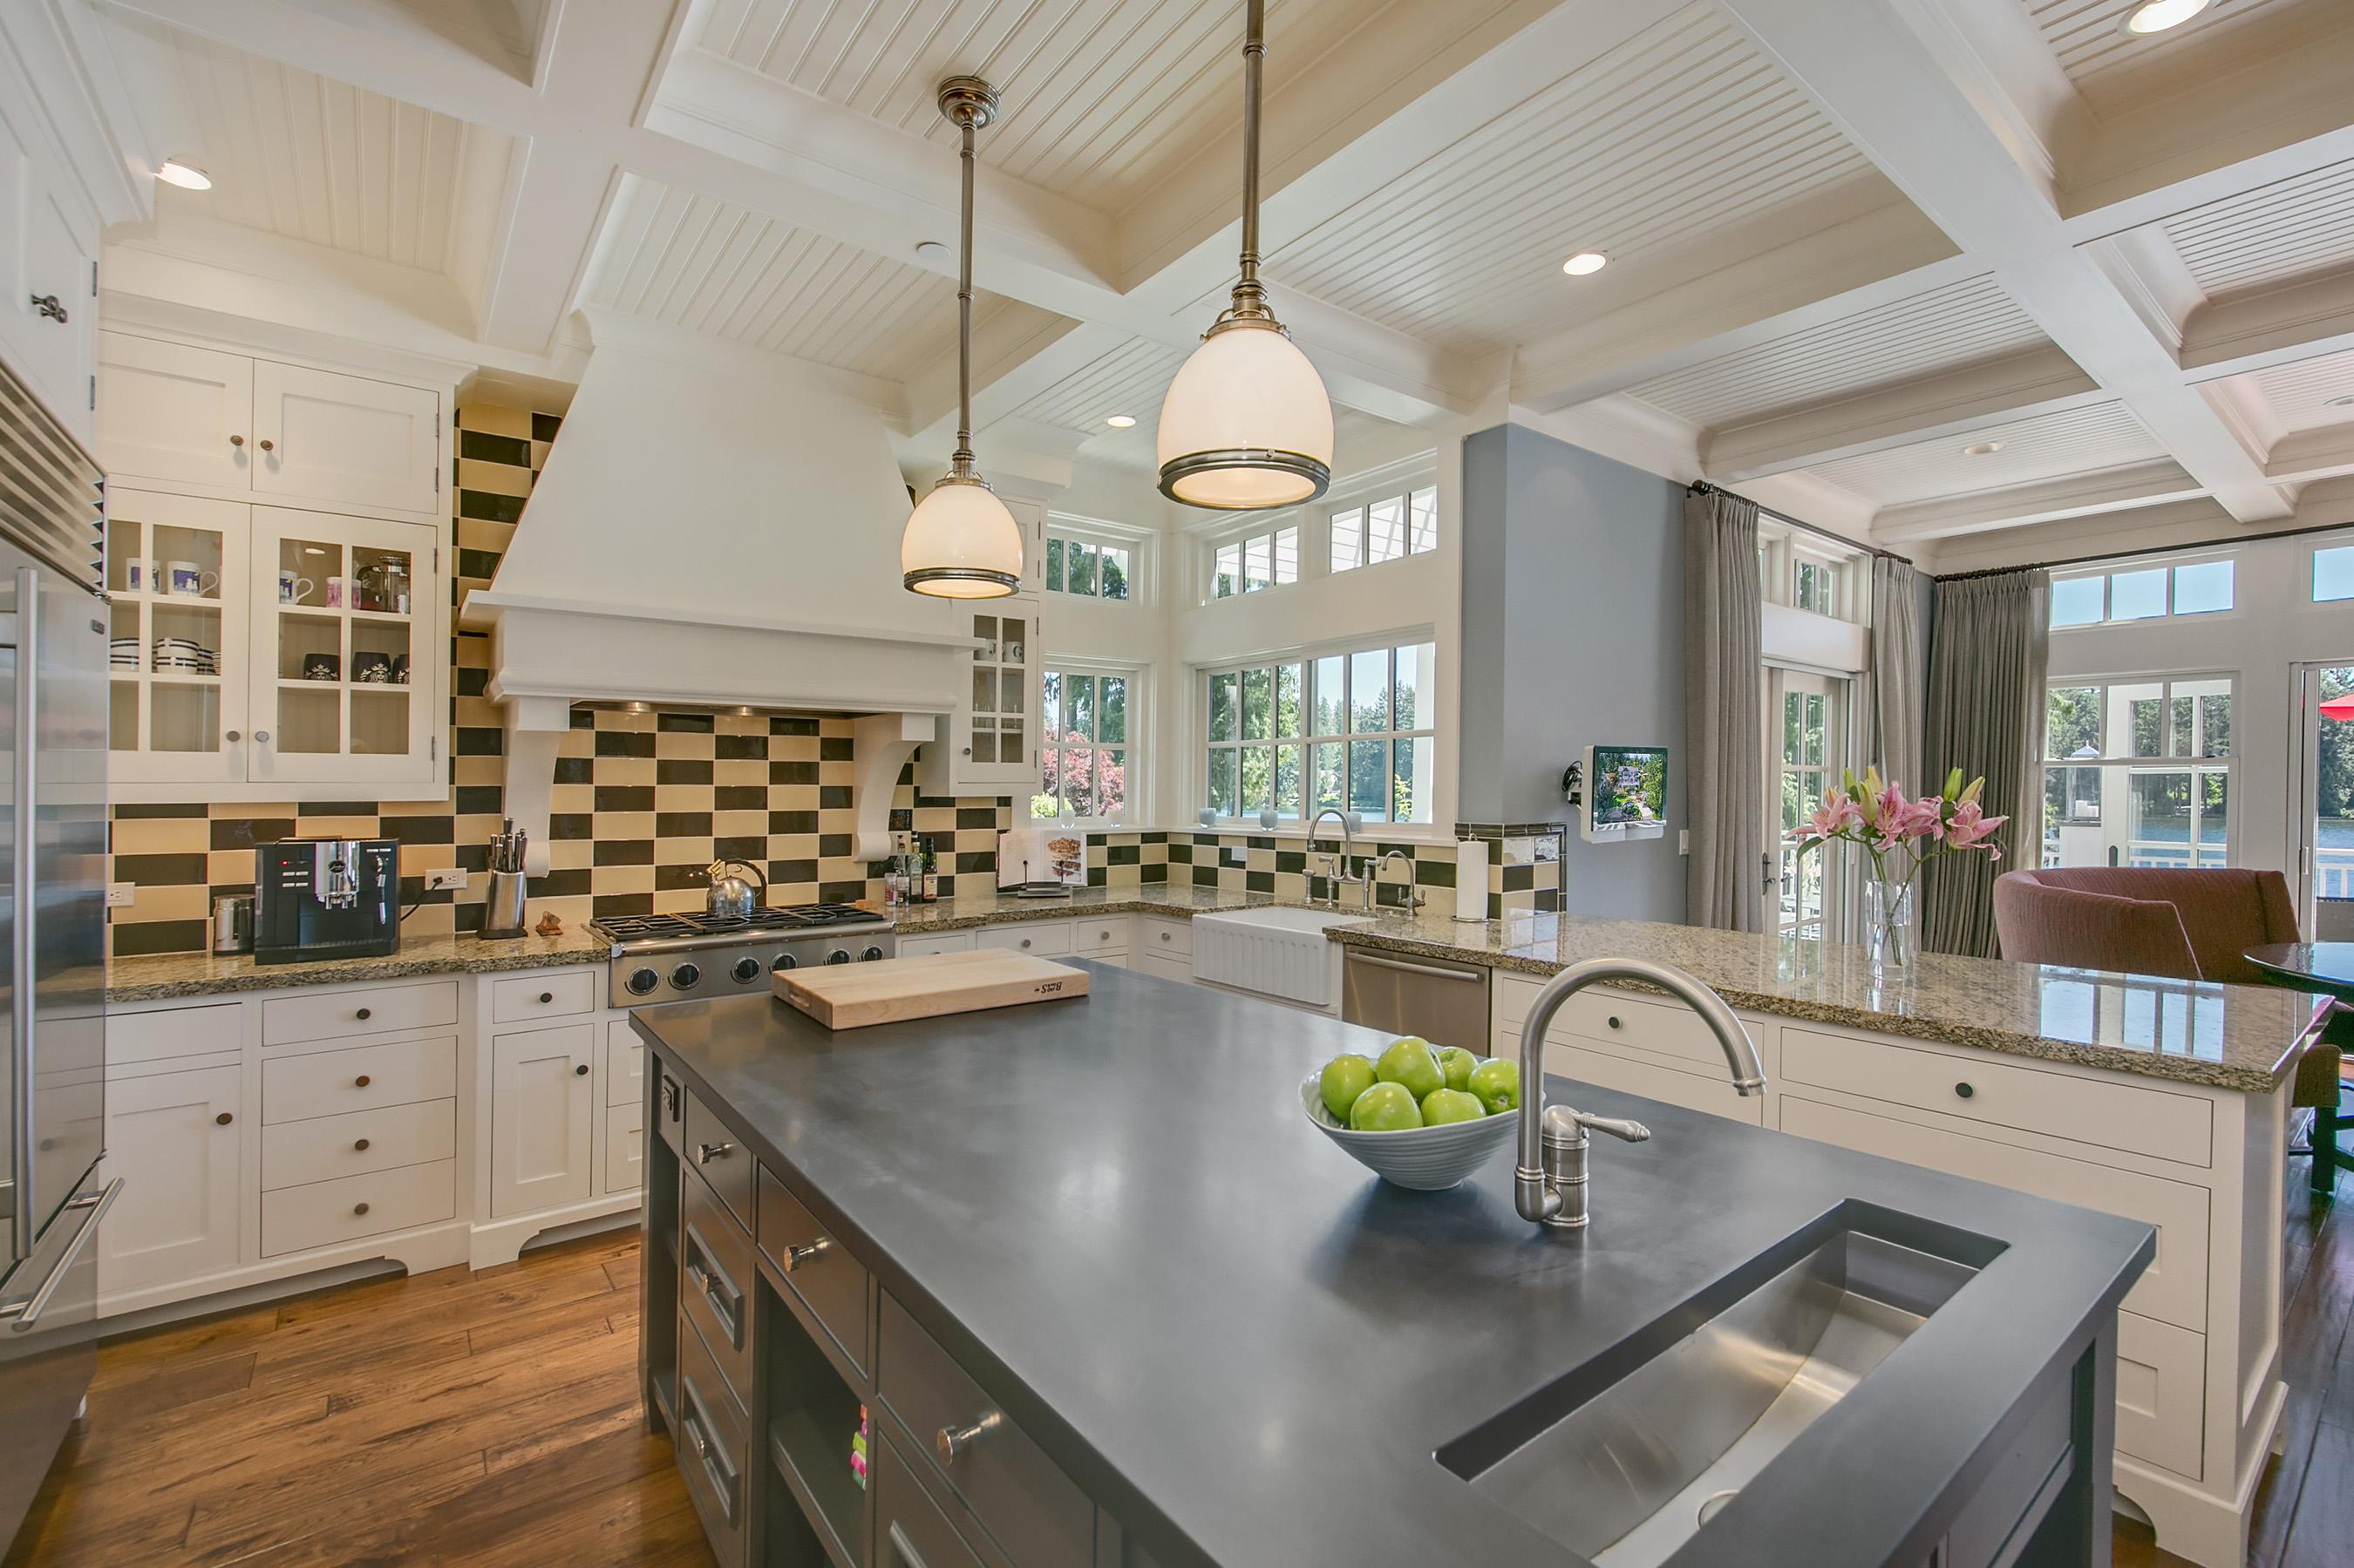 Somehow, the kitchen features dual sinks, dual ovens, granite counters and a six-range gas stove without seeming the tiniest bit imposing.